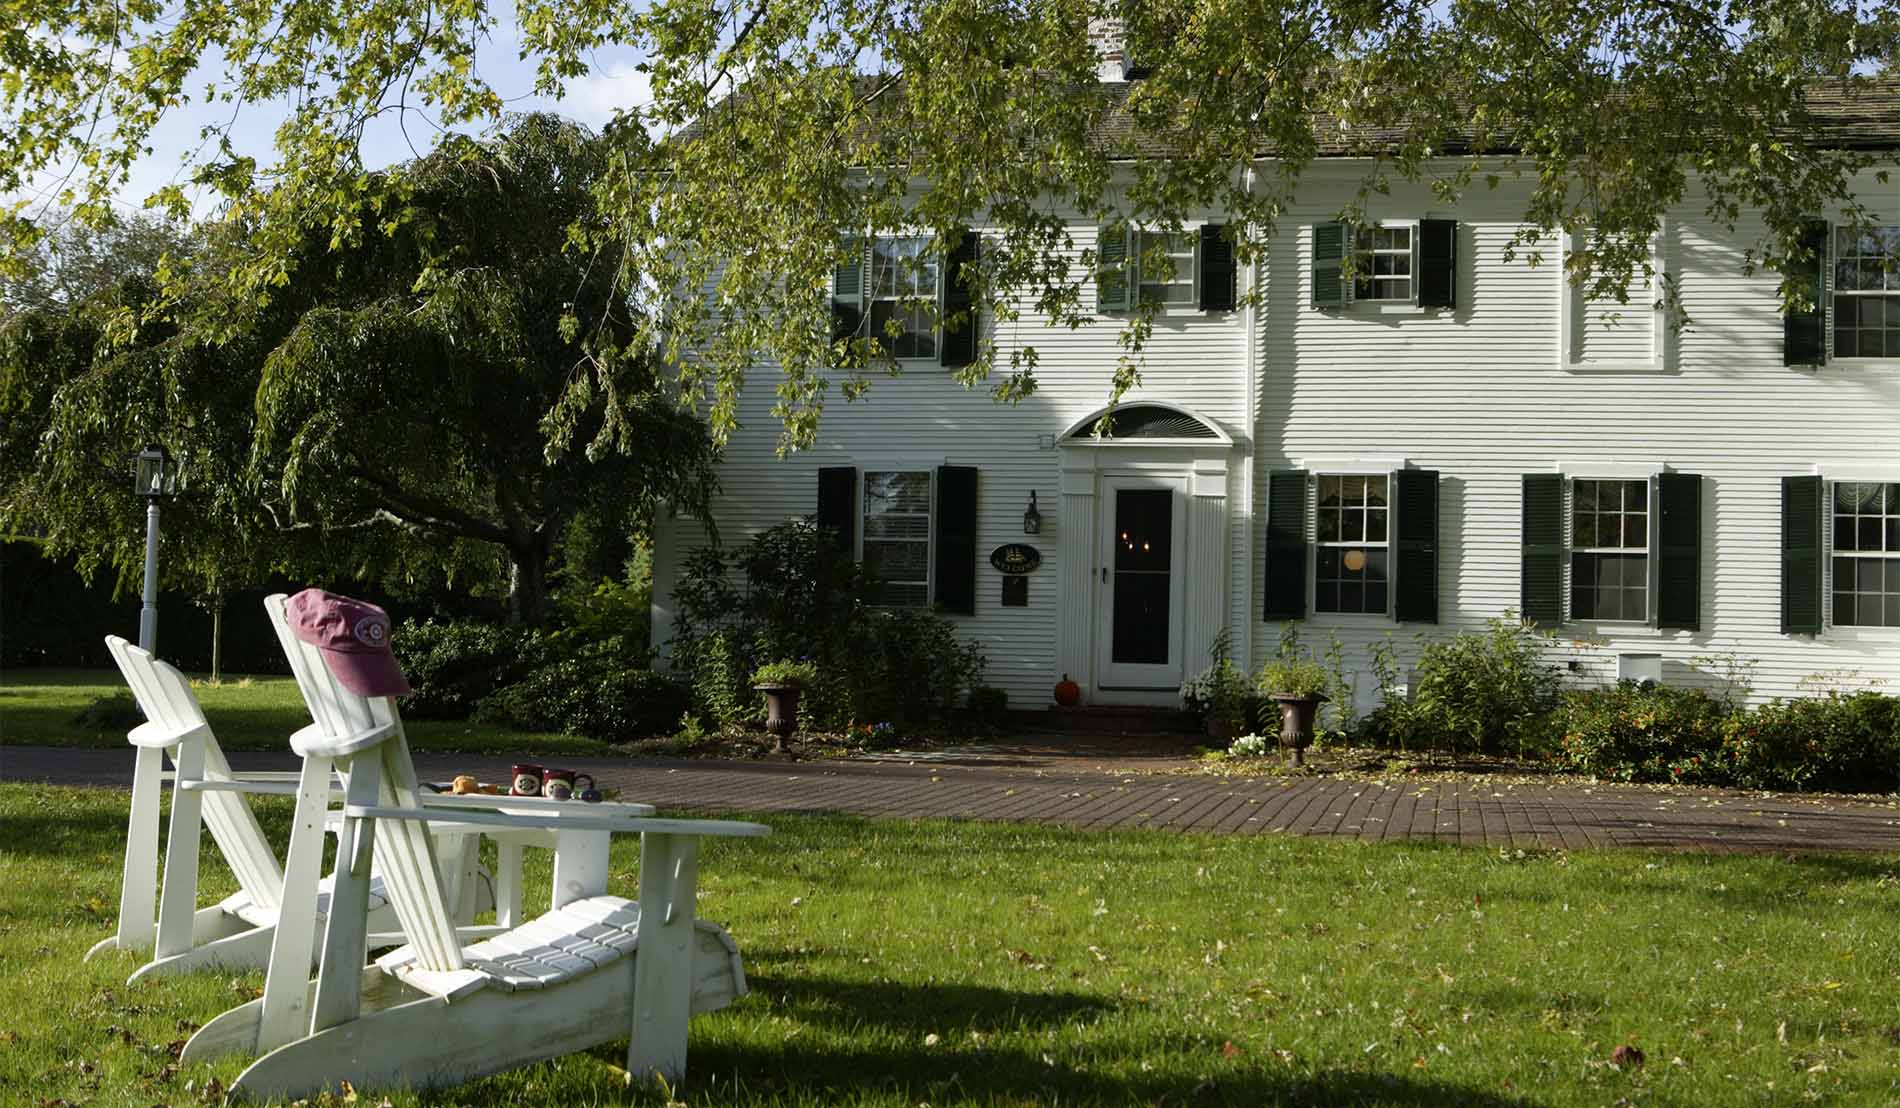 Exterior of Main House with lush, green trees and white Adirondack chairs